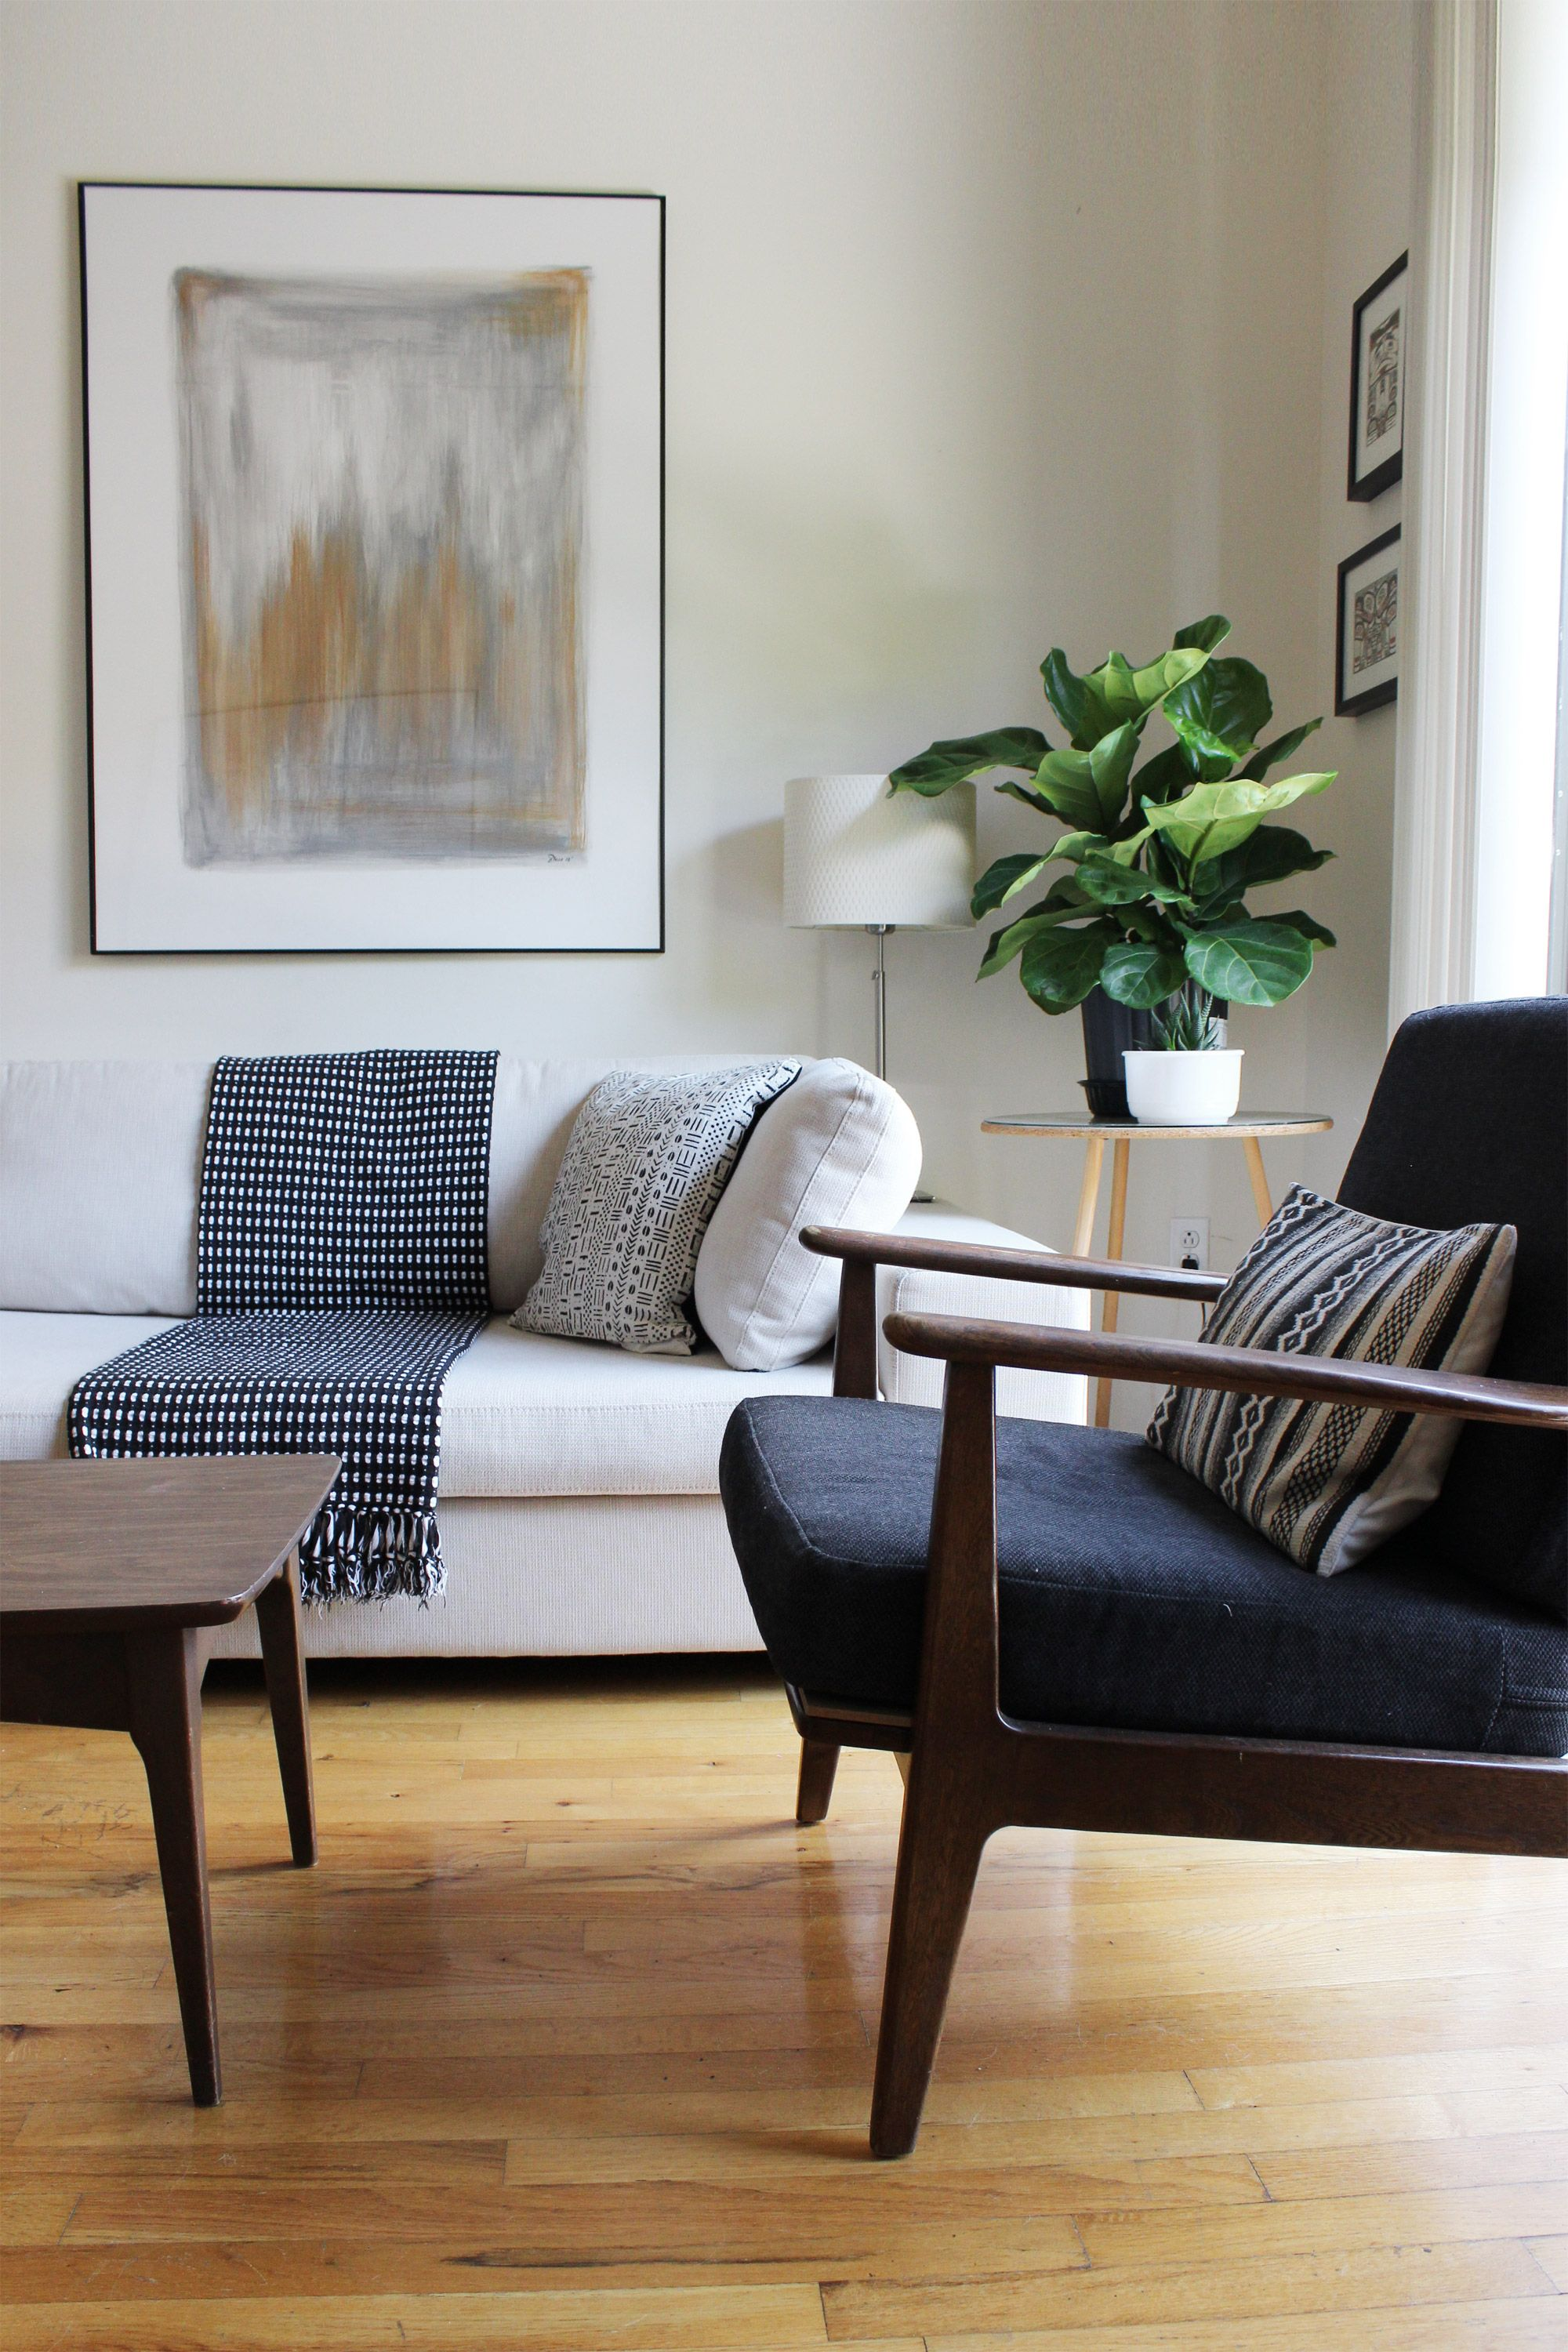 Never Want to Leave 10 Tips for Making Your Home the Most